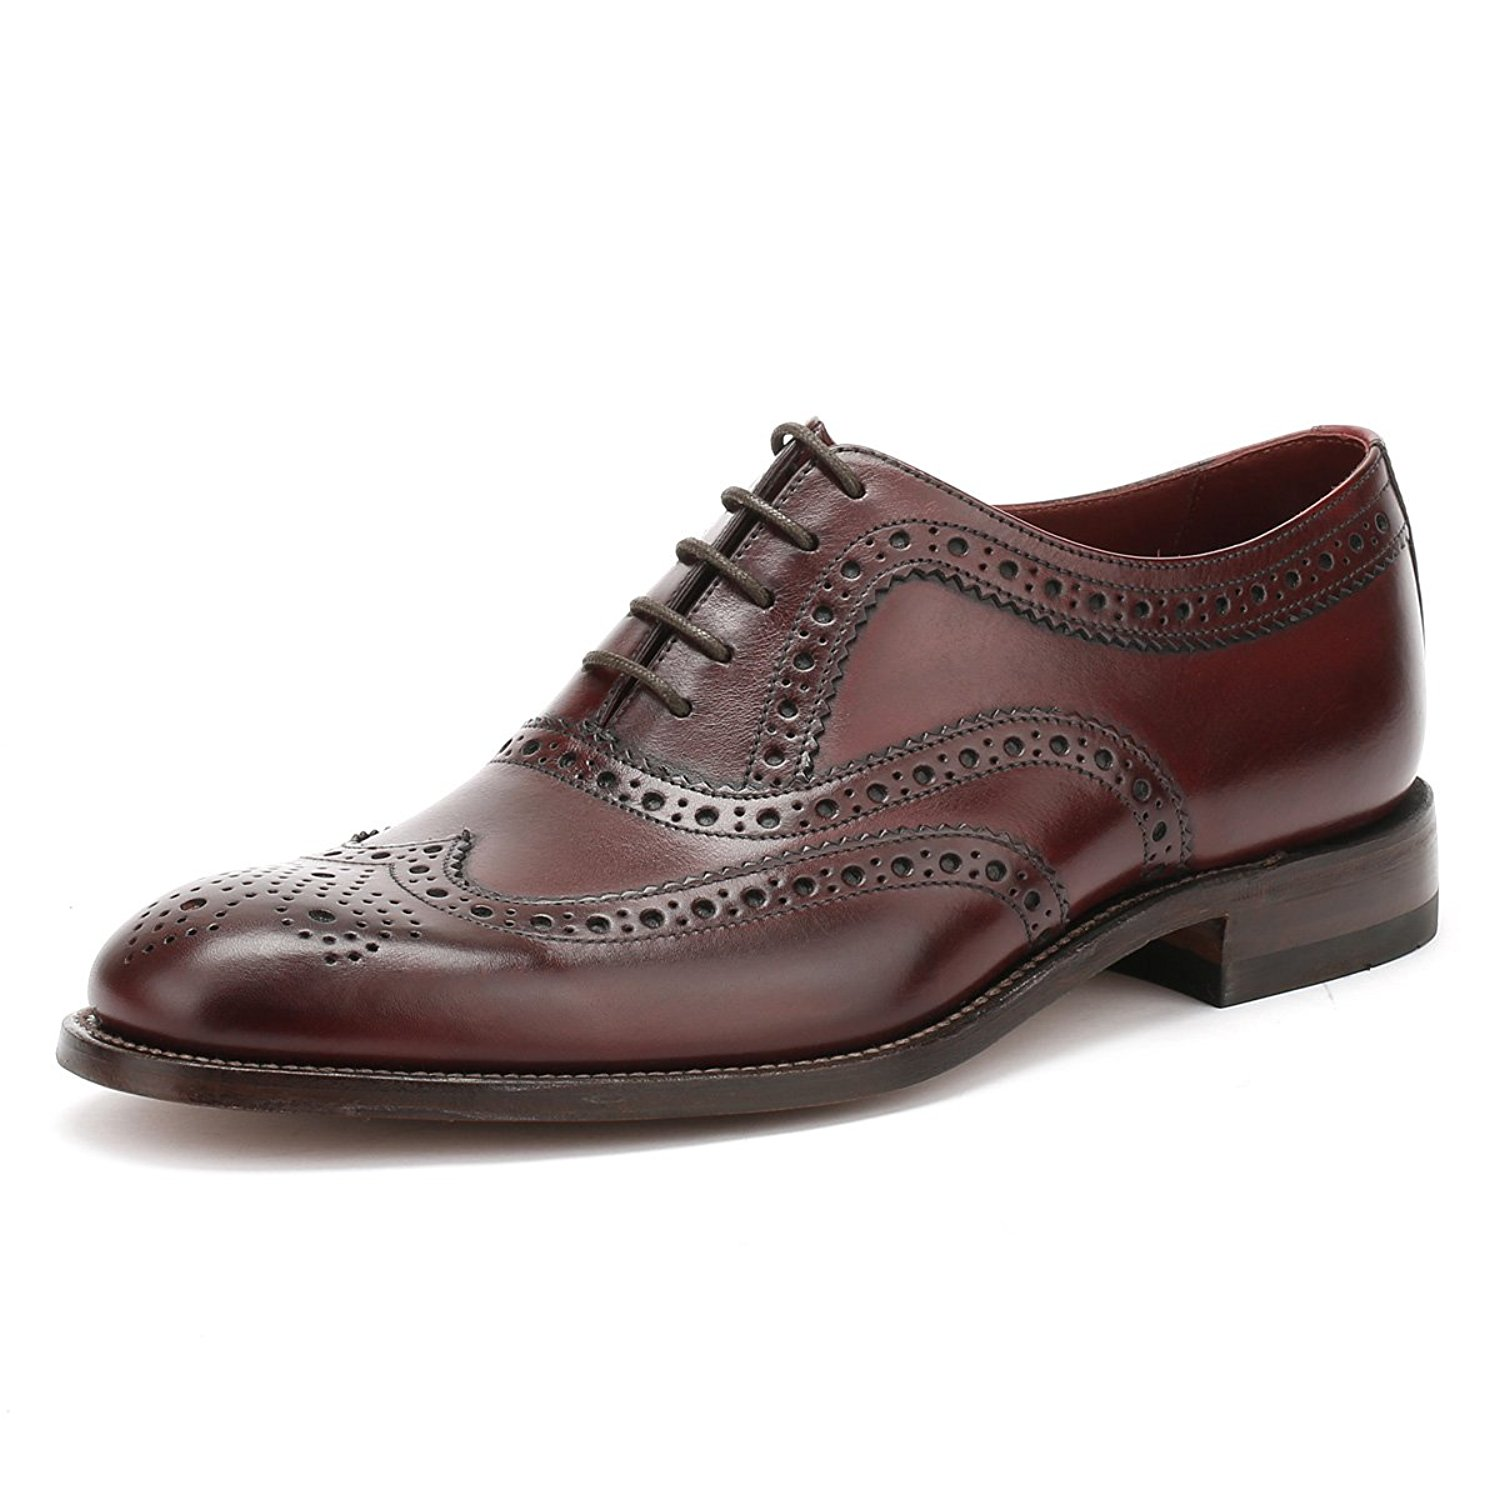 c7094442 Made in England. Get Quotations · Loake Men's Calf Leather Fearnley Brogues  Burgundy